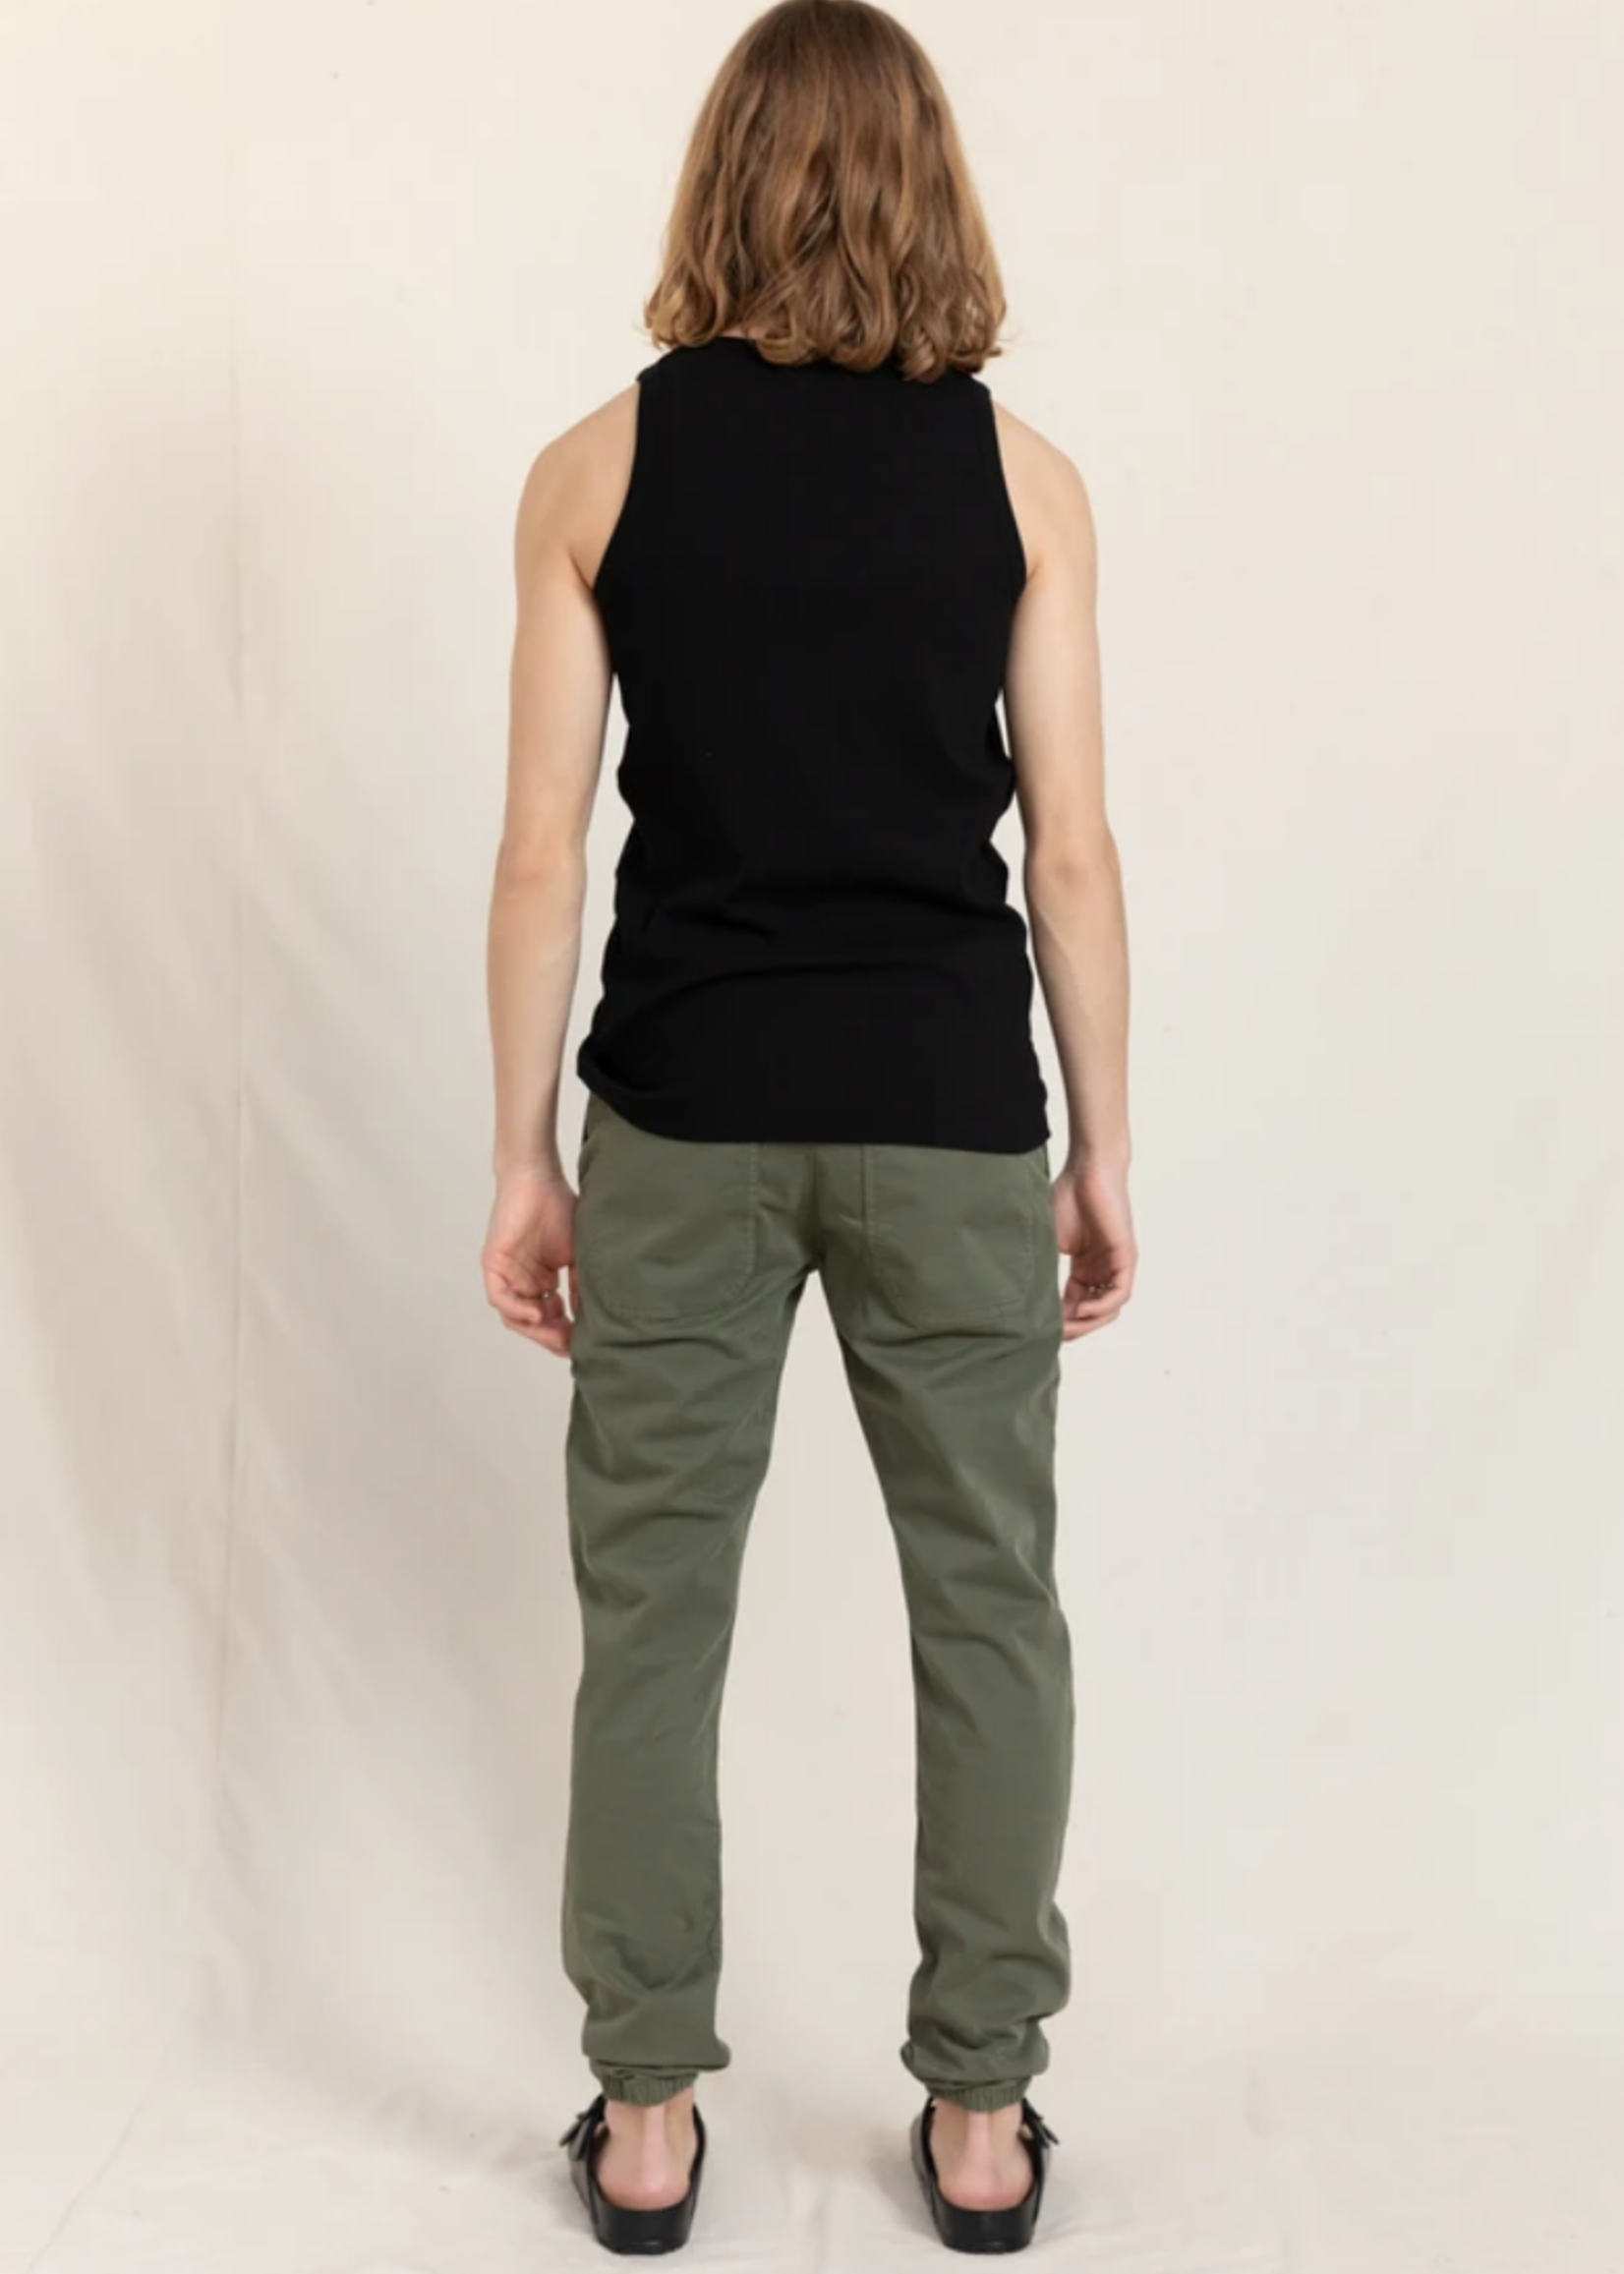 FINGER IN THE NOSE SKATER City Khaki - Elasticed Bottom Chino Fit Pants